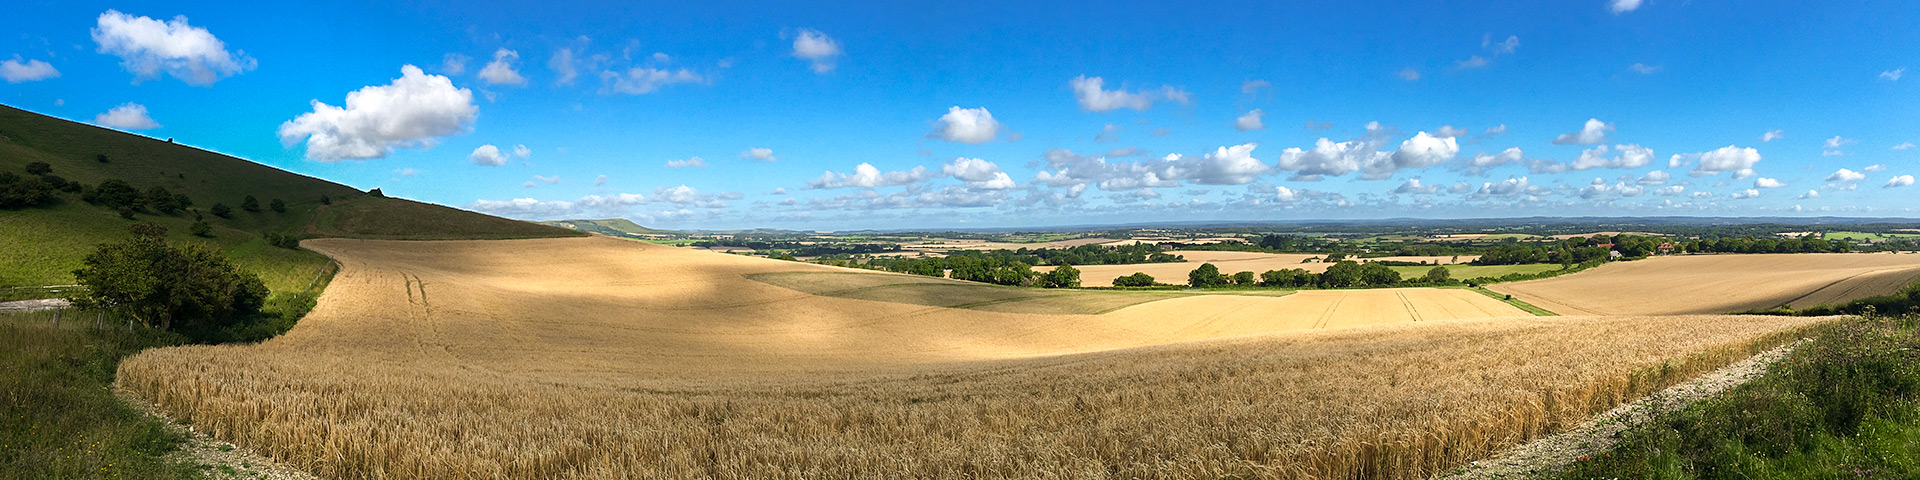 Panorama of the Long Man of Wilmington walk in South Downs, England